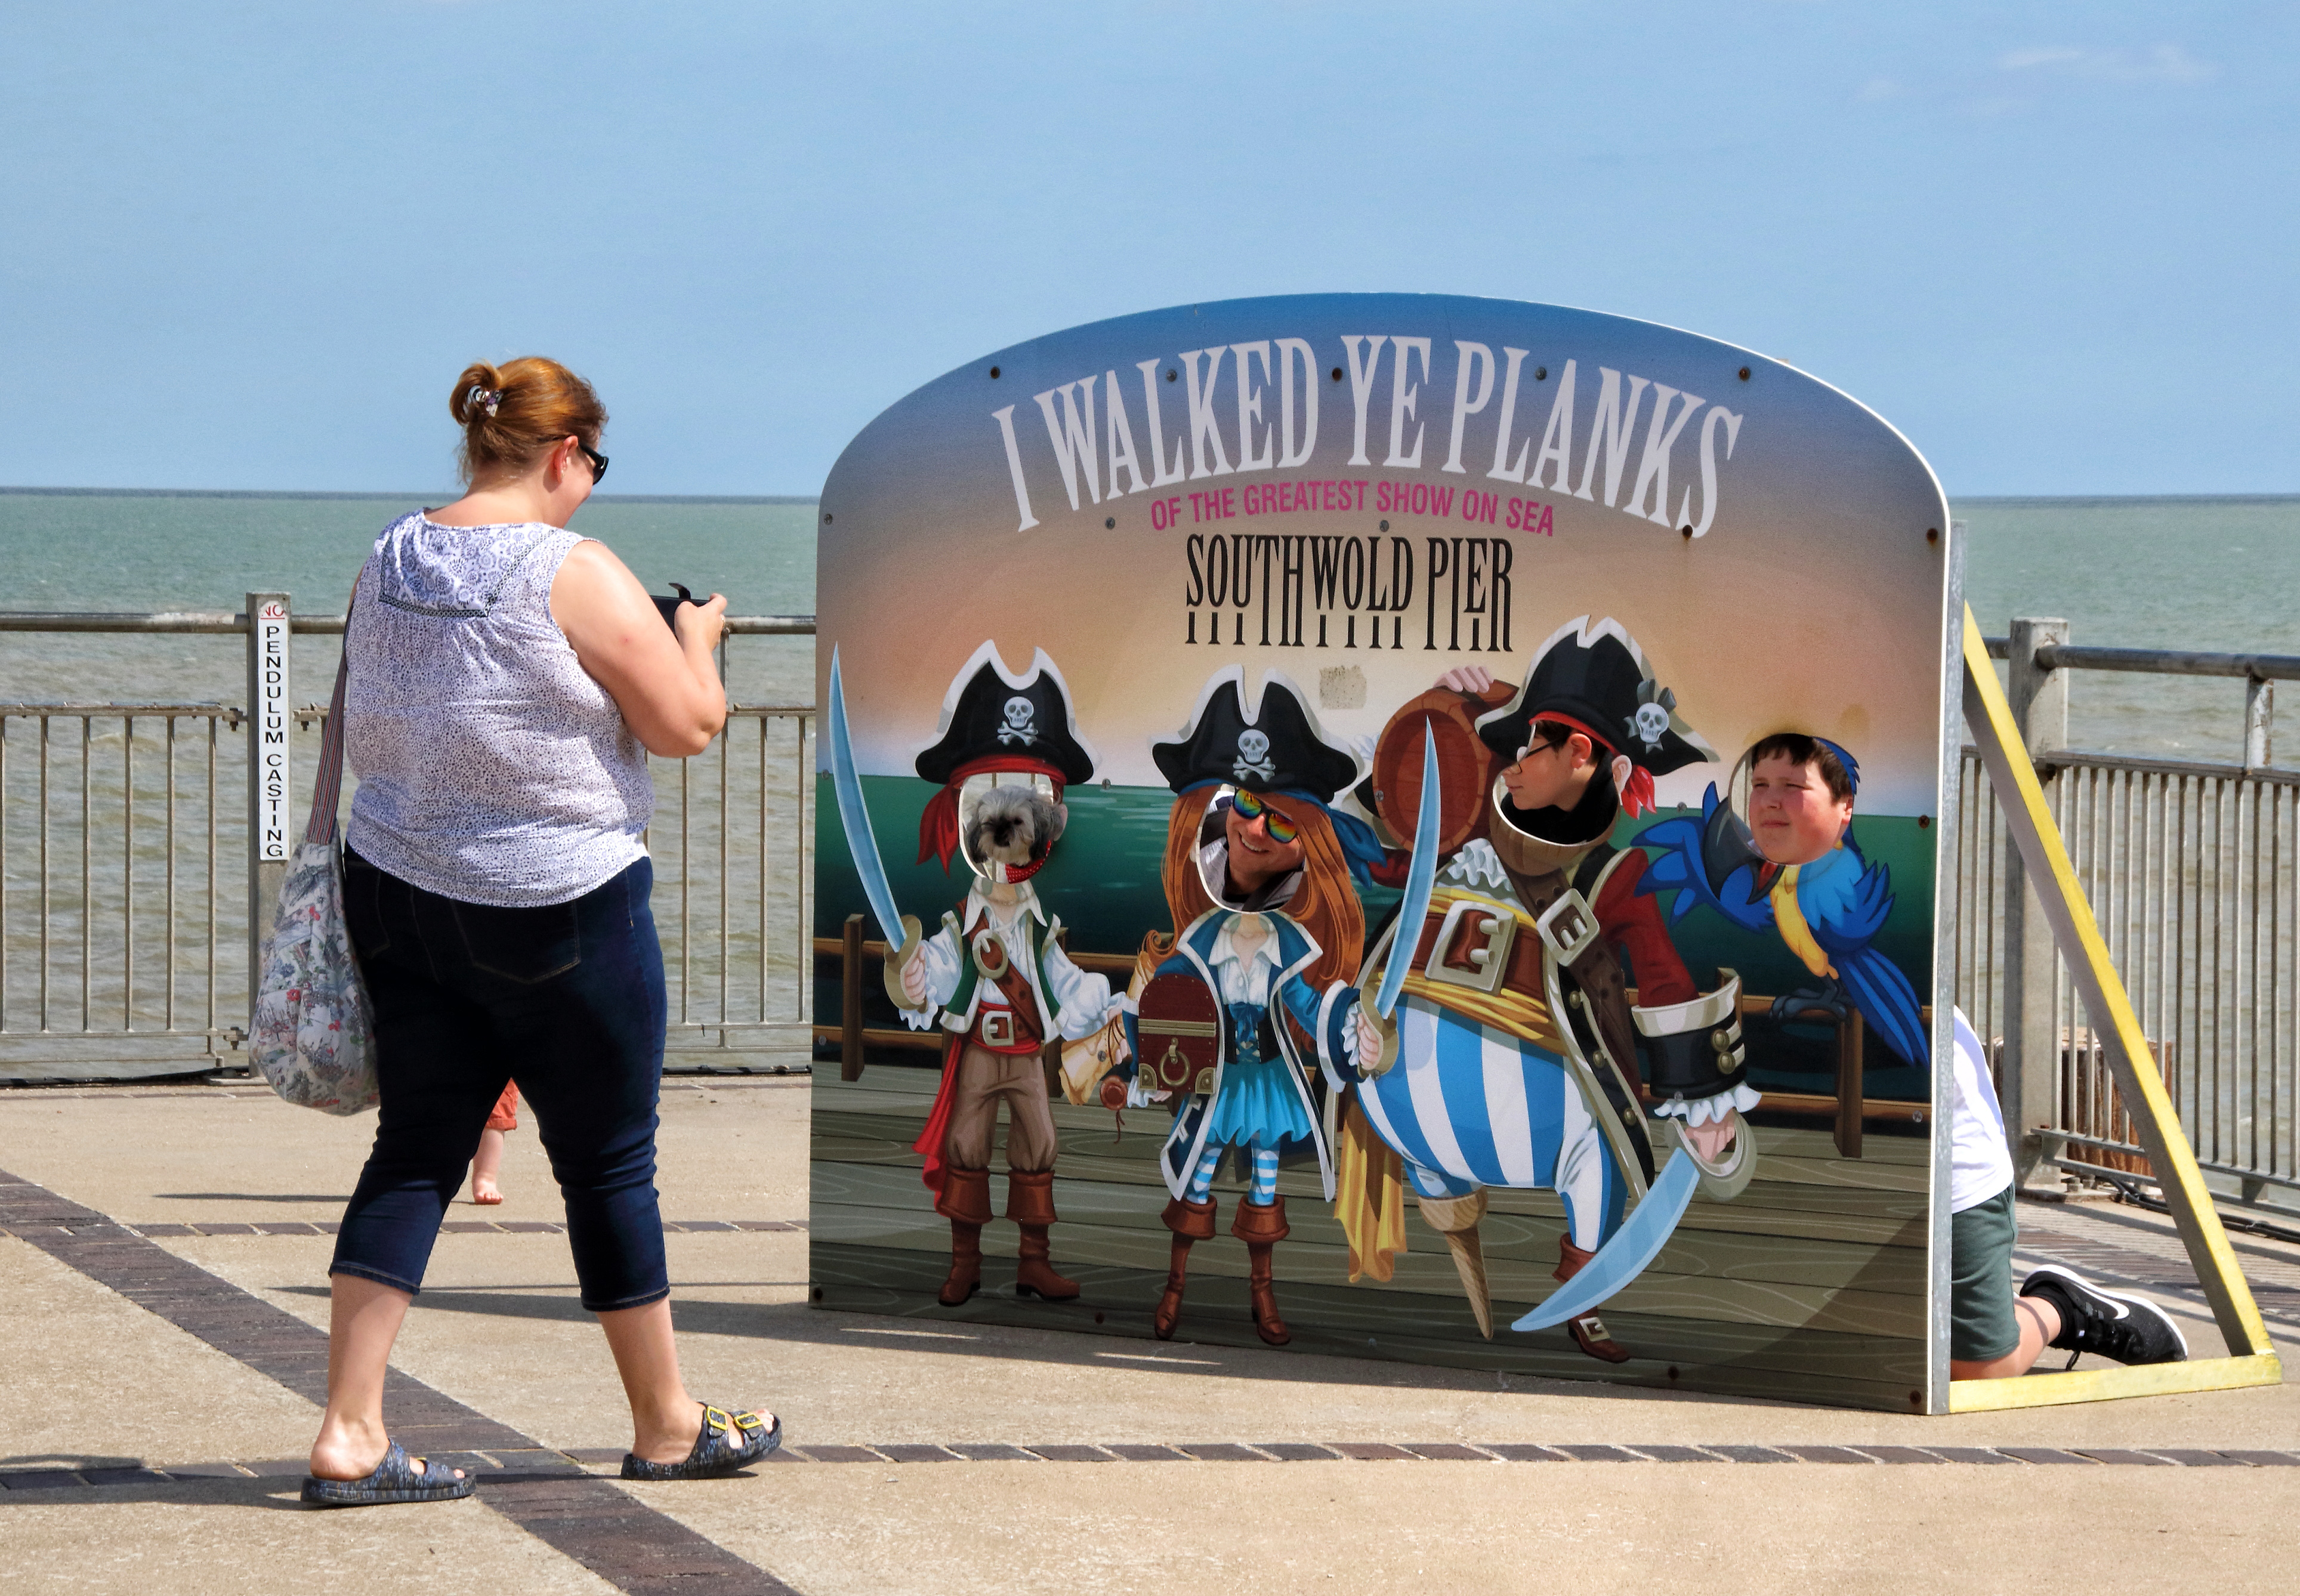 A woman takes a photo of 'I walked ye planks' fun pirate pop up on the Pier. With the beaches in England now fully opened with only social distancing measures in force, people are taking the chance to visit some coastal resorts. Southwold is an English resort town full of an olde world charm and famous for its 300 brightly coloured beach huts. Plenty of people were out and about on the sandy beach and on the pier. (Photo by Keith Mayhew / SOPA Images/Sipa USA)